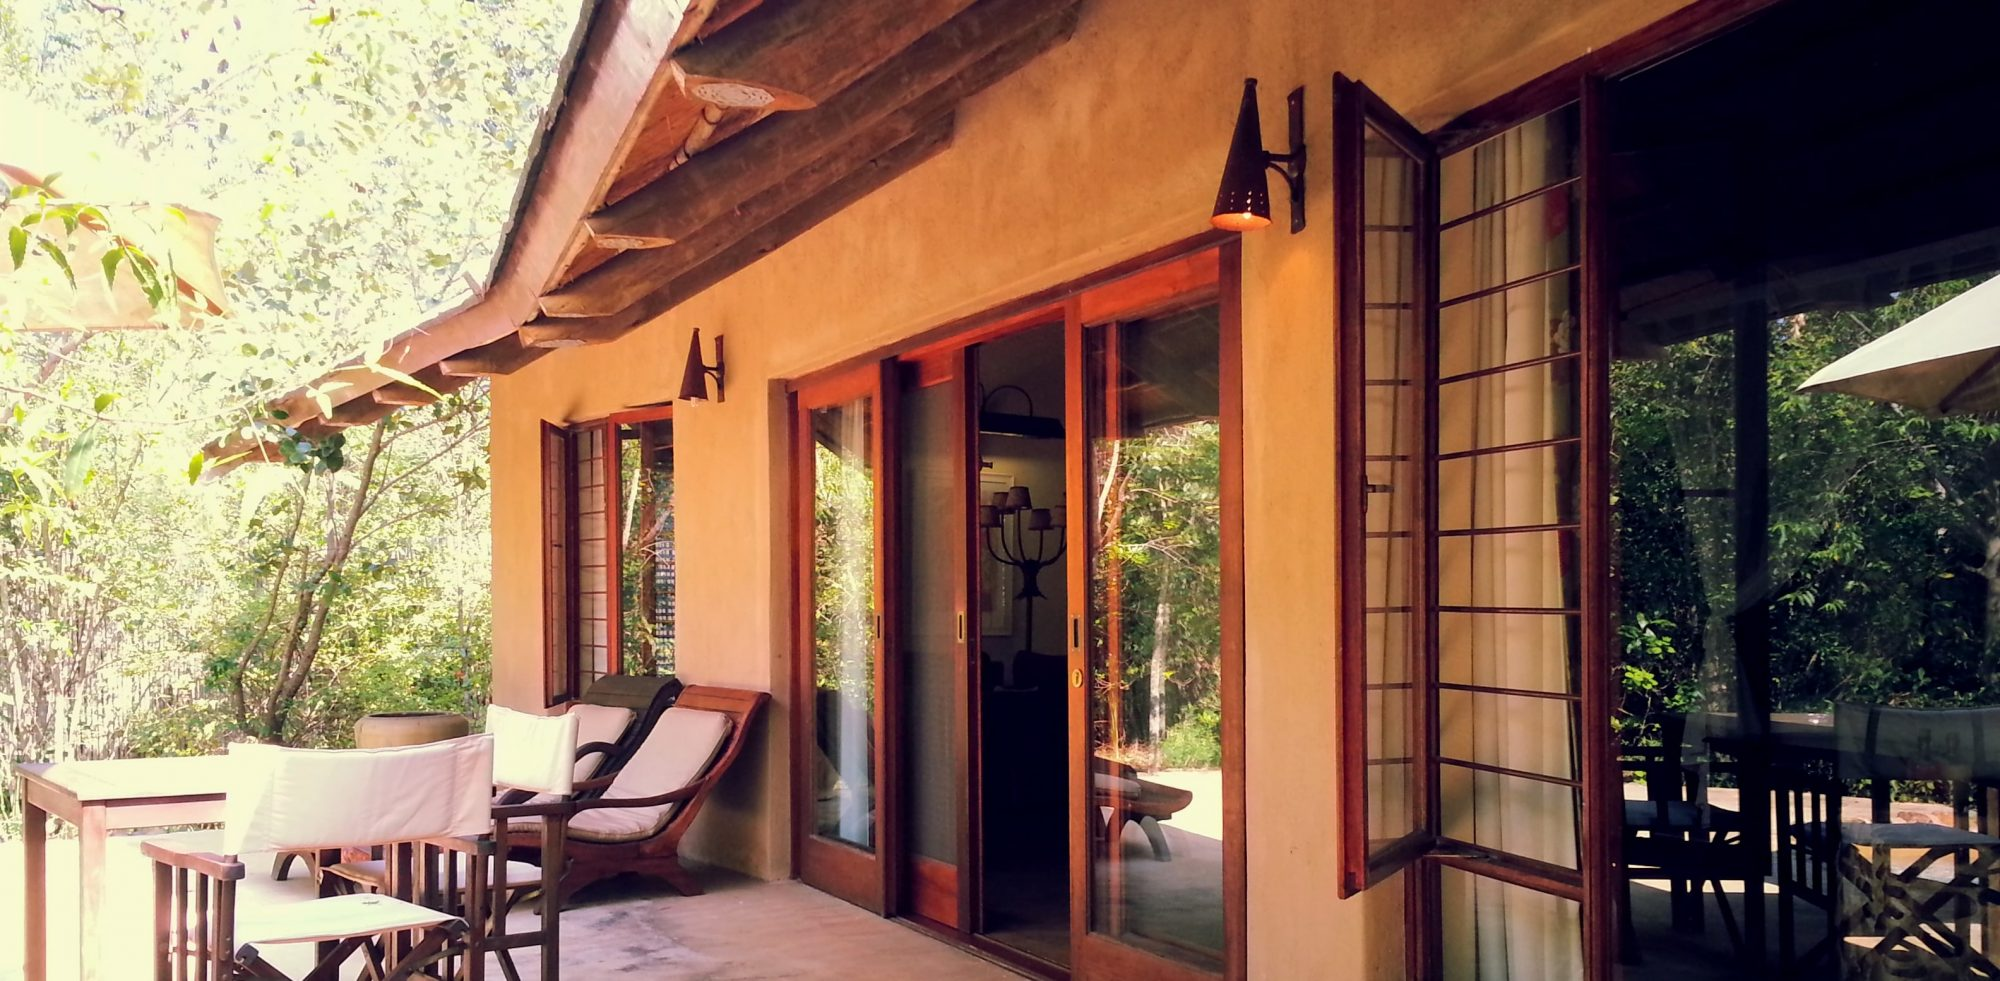 Tanamera Lodge, Hazyview, Mpumalanga (12)